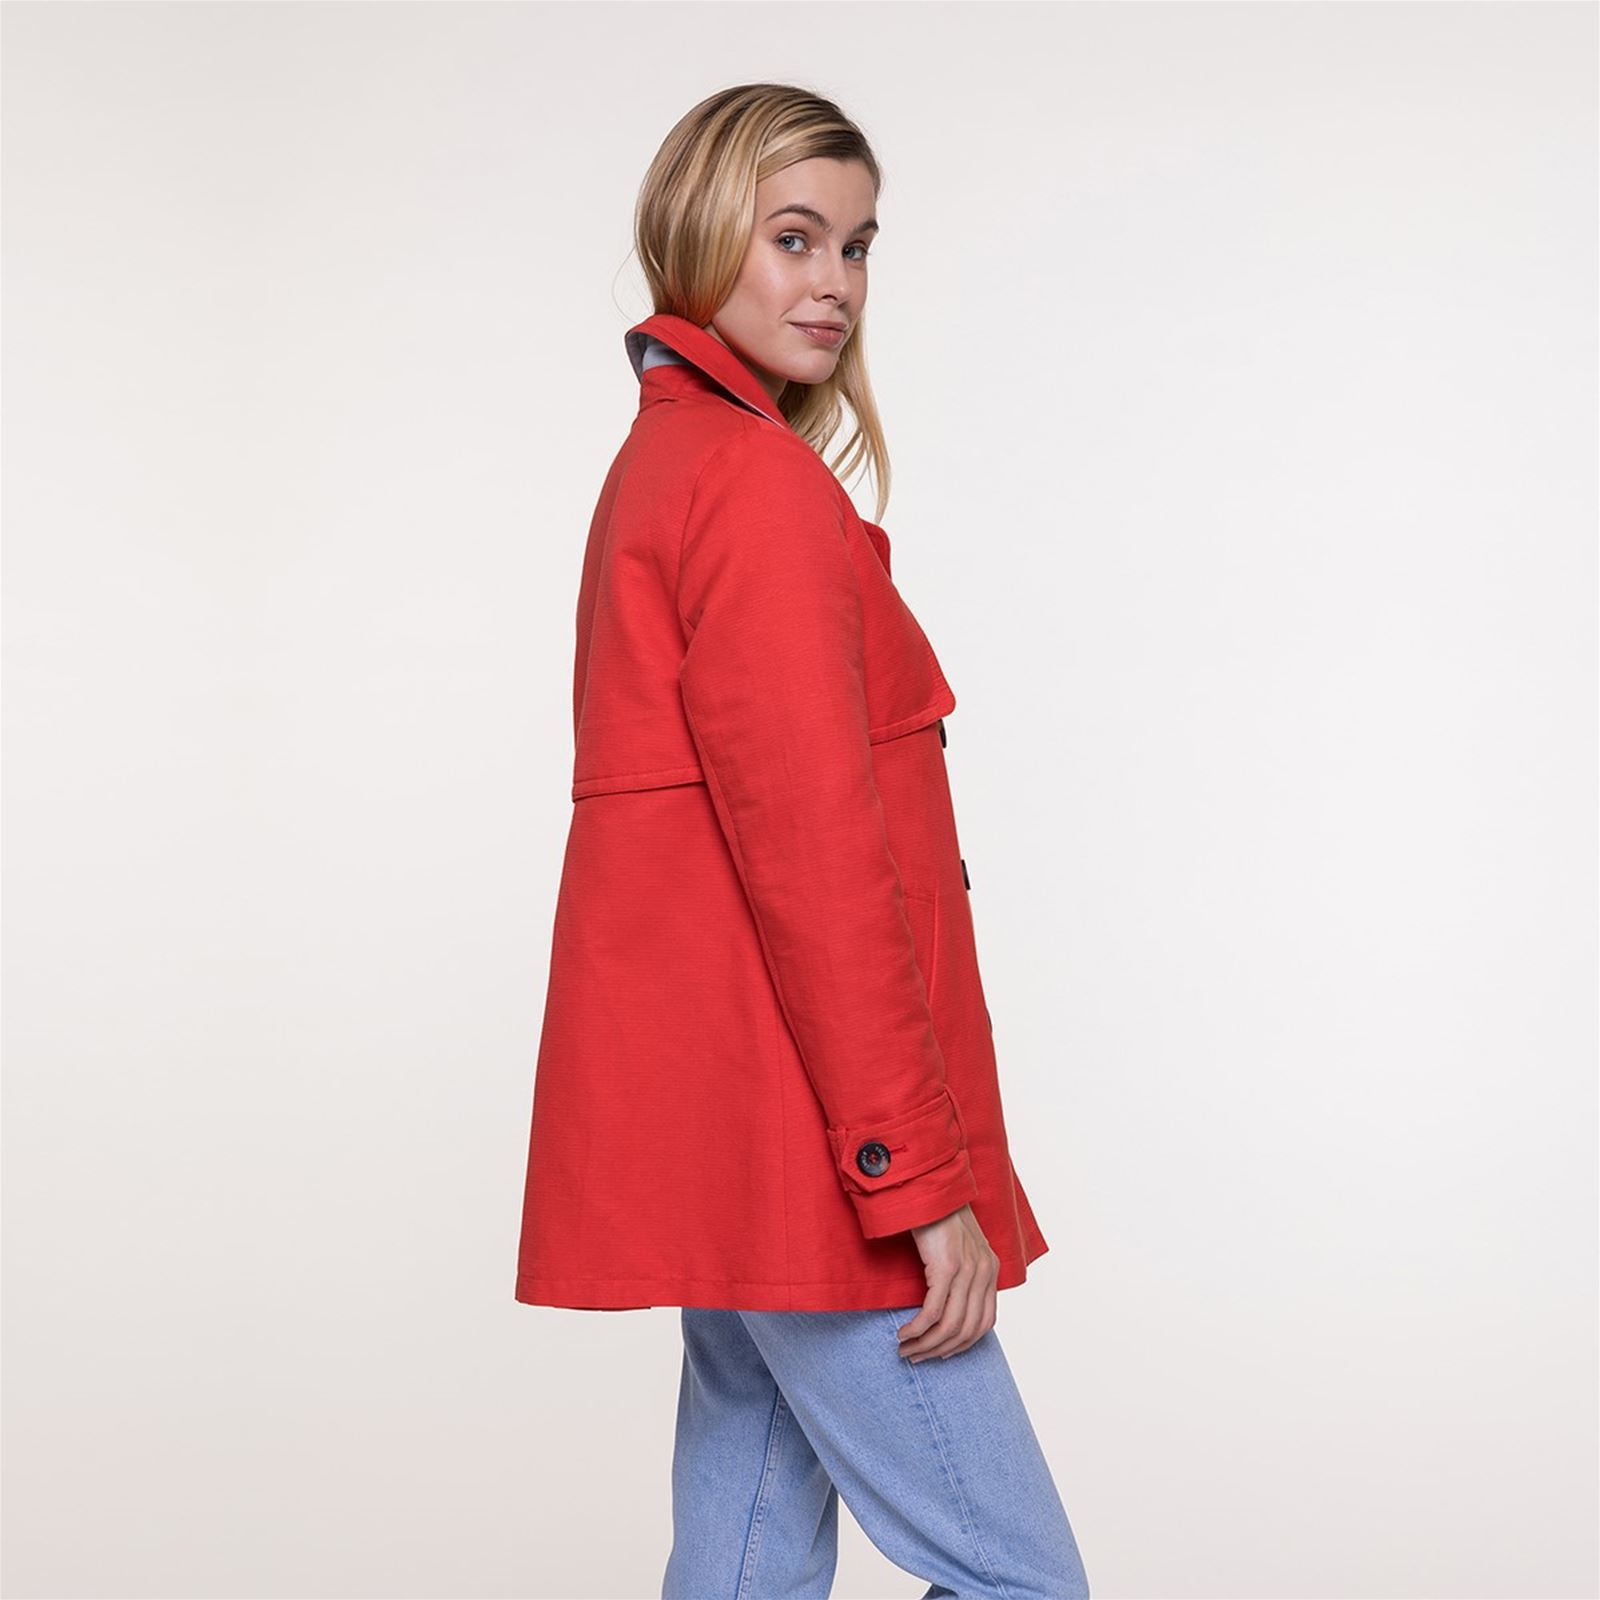 Natté En Caban Trench And Coton Coat Rouge ZqtXWwEXa